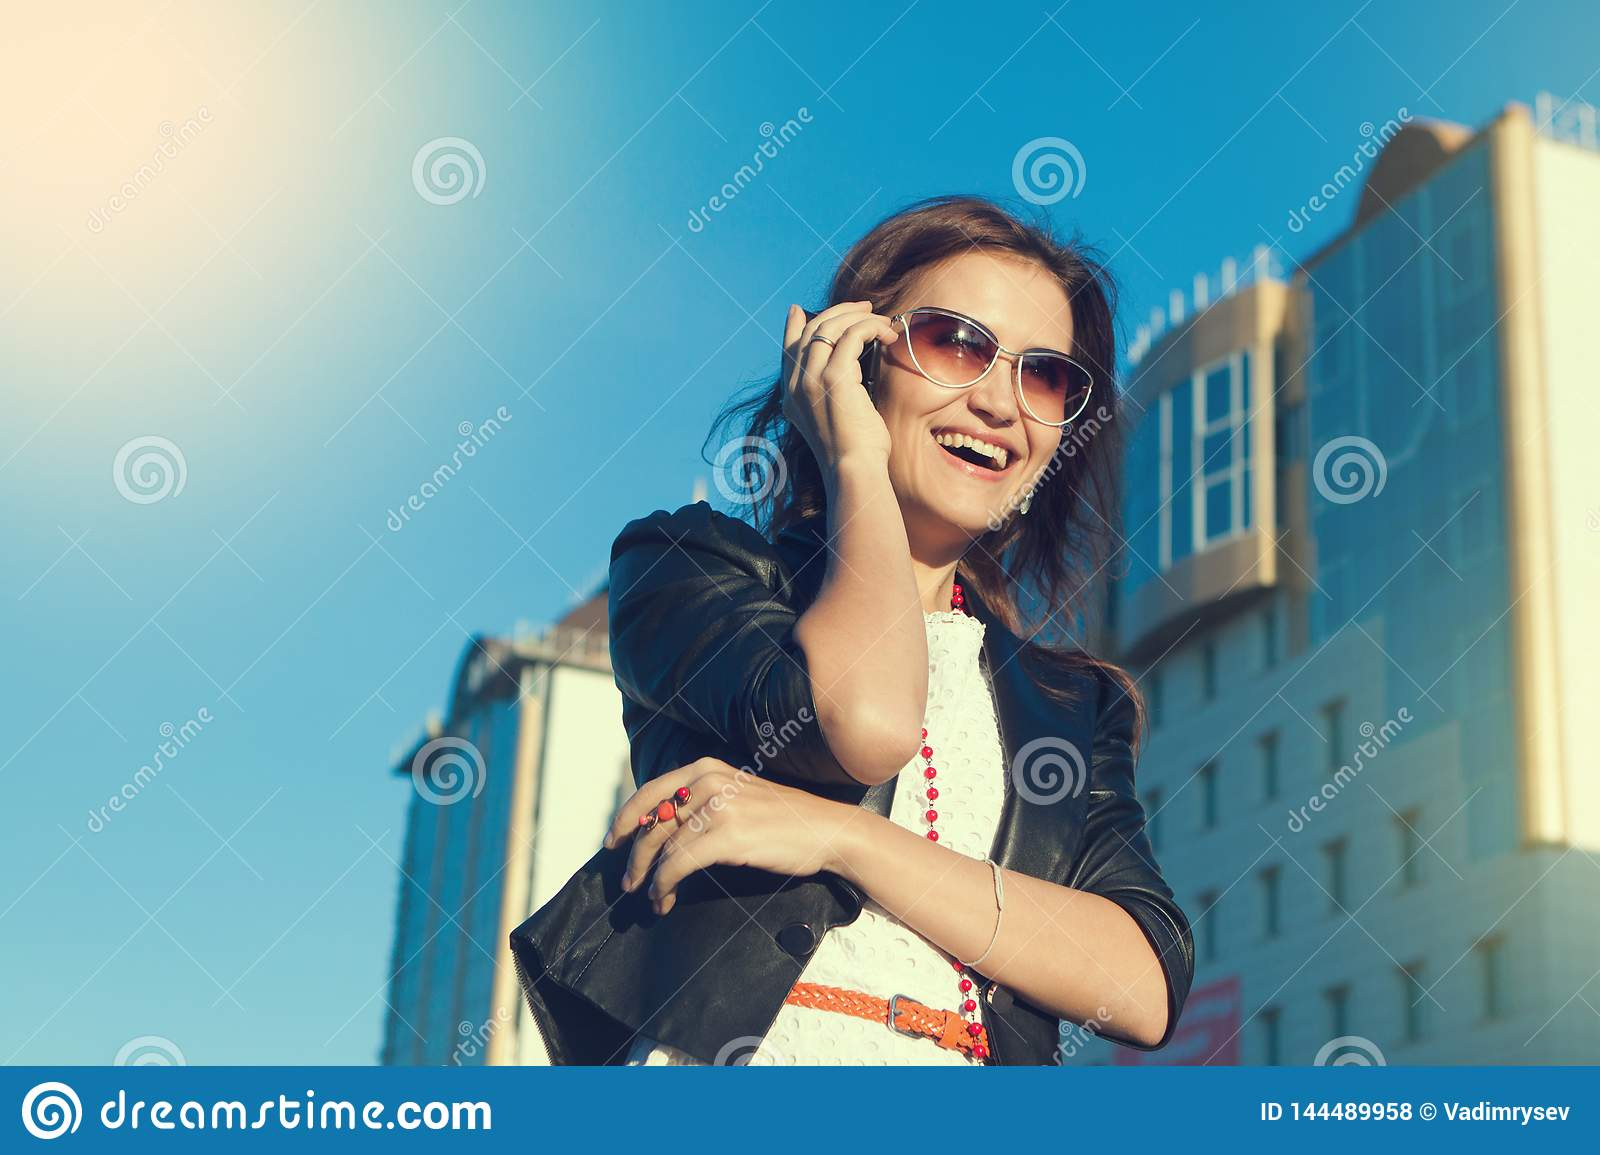 Attractive businesswoman using a cell phone in the city in sanny day.